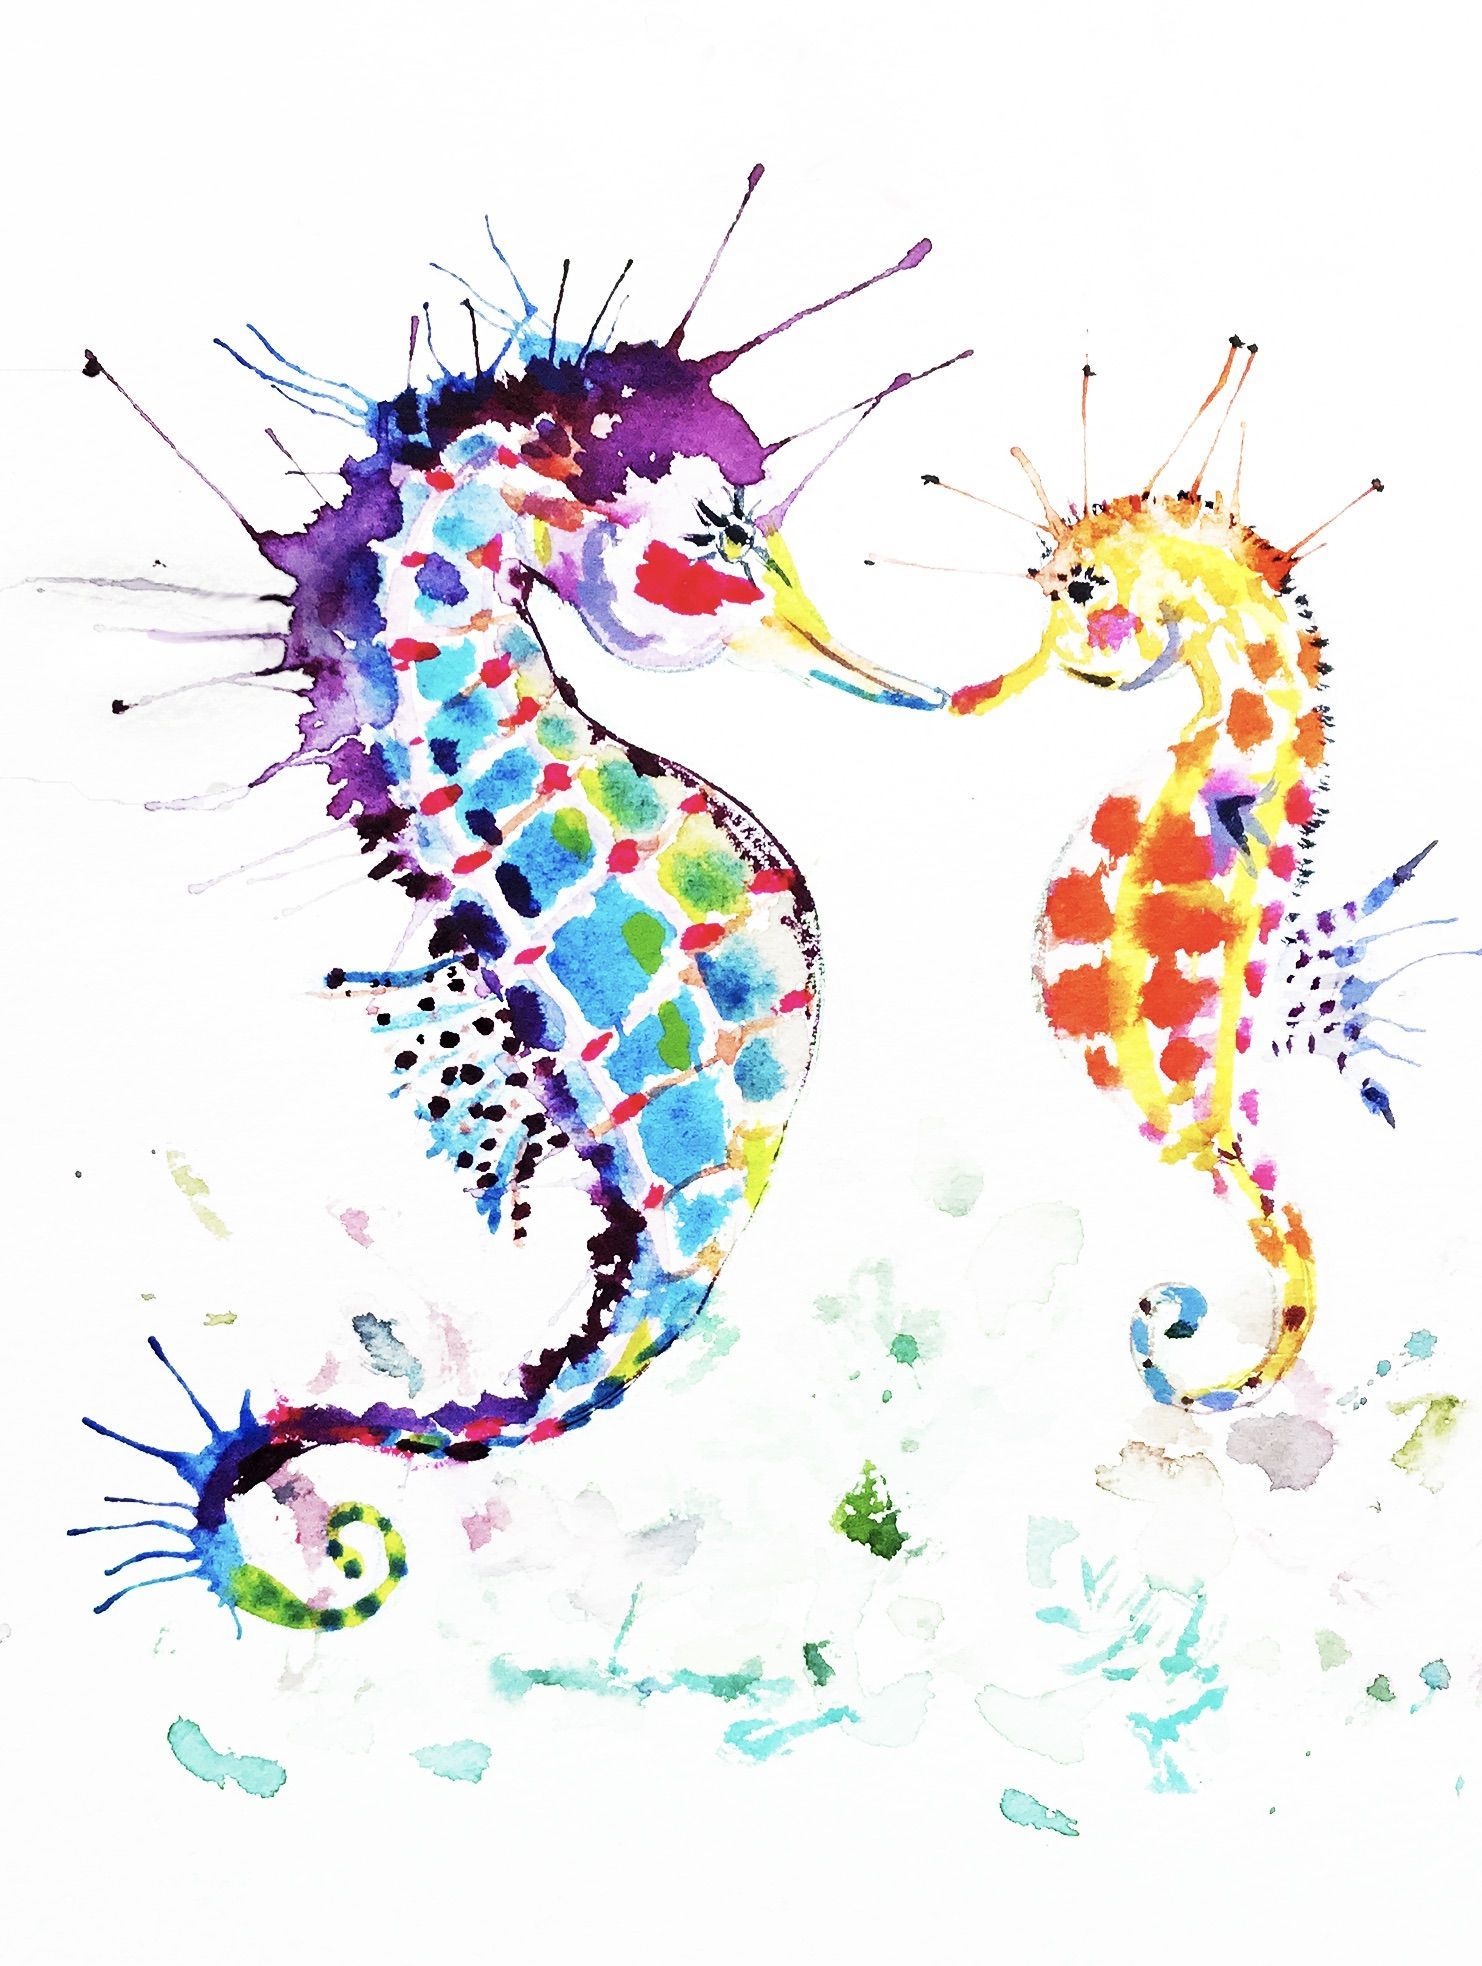 These loving seahorses bring colorful art into your home so easily ! I've had the great fortune to see these beautiful creatures while diving. The seahorse is considered a sign of good luck. Enjoy these guys looking over your desk, in your kitchen or watching over the baby. They will make the perfect good luck charm for yourself or as a gift!